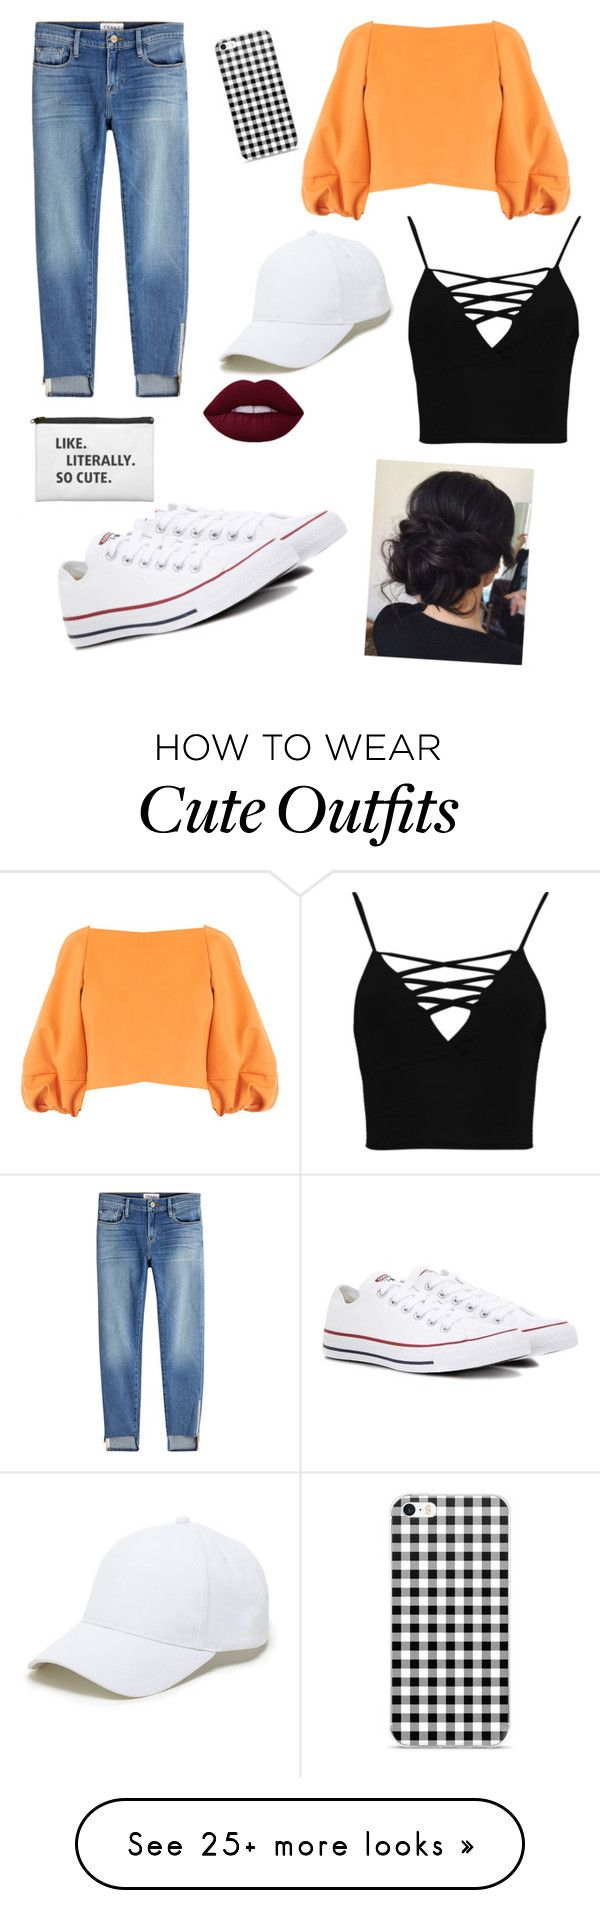 """i really like this outfit"" by kahalicorona on Polyvore featuring Frame, TIBI, Boohoo, Converse and Sole Society"